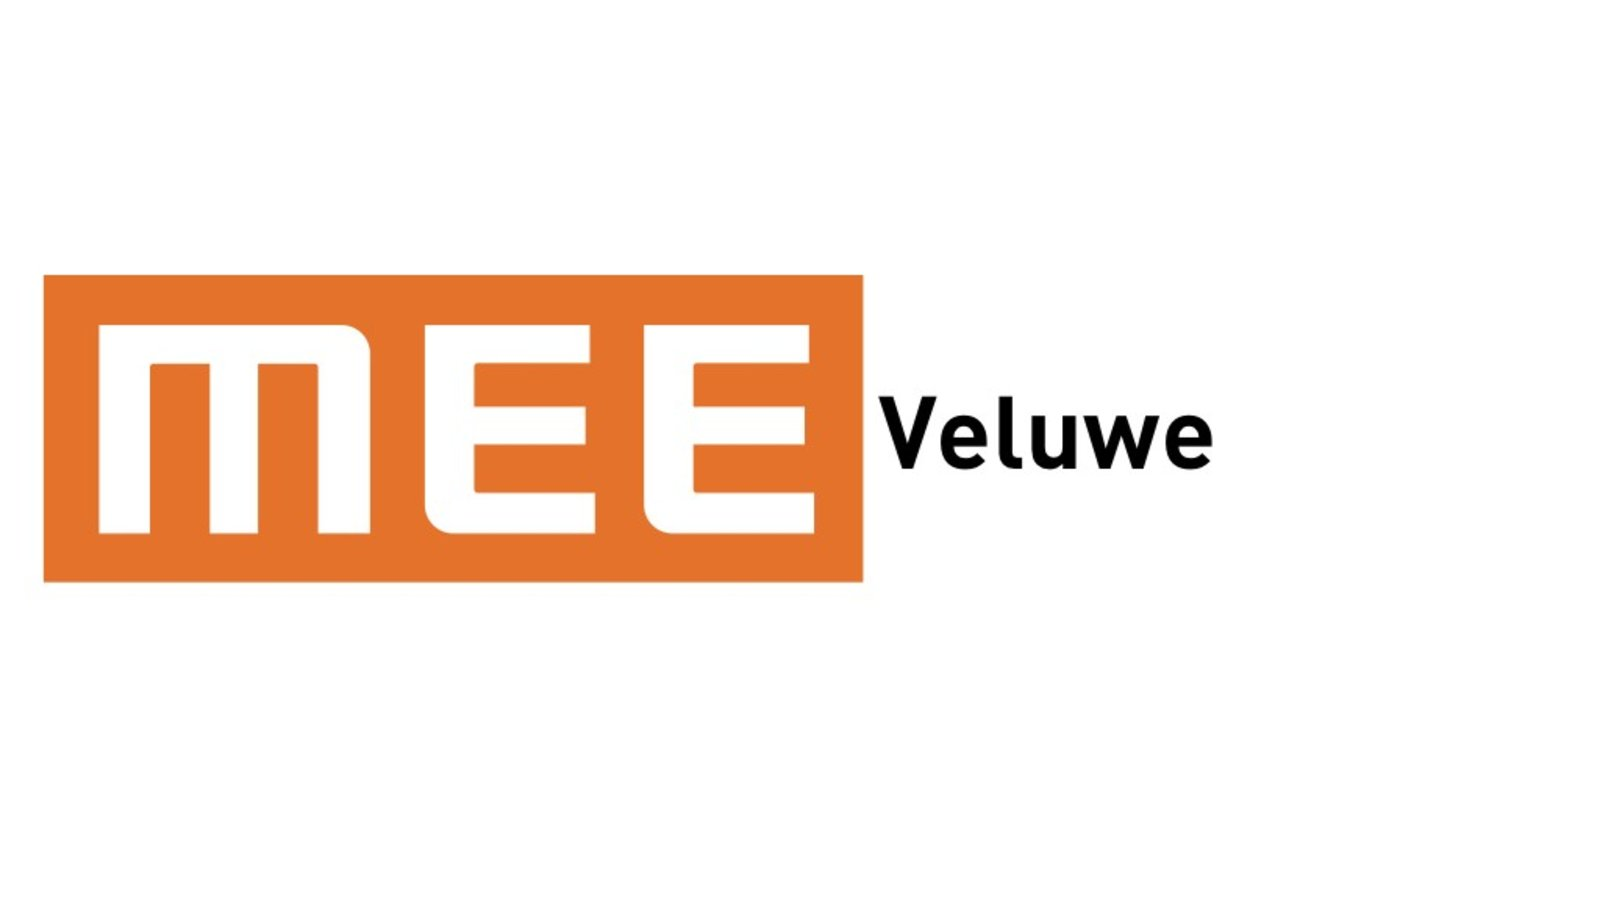 https://welsaam.nl/wp-content/uploads/2018/09/logo-MEE_Veluwe-c98ce6440bb7a5852df262898fde080f.jpg